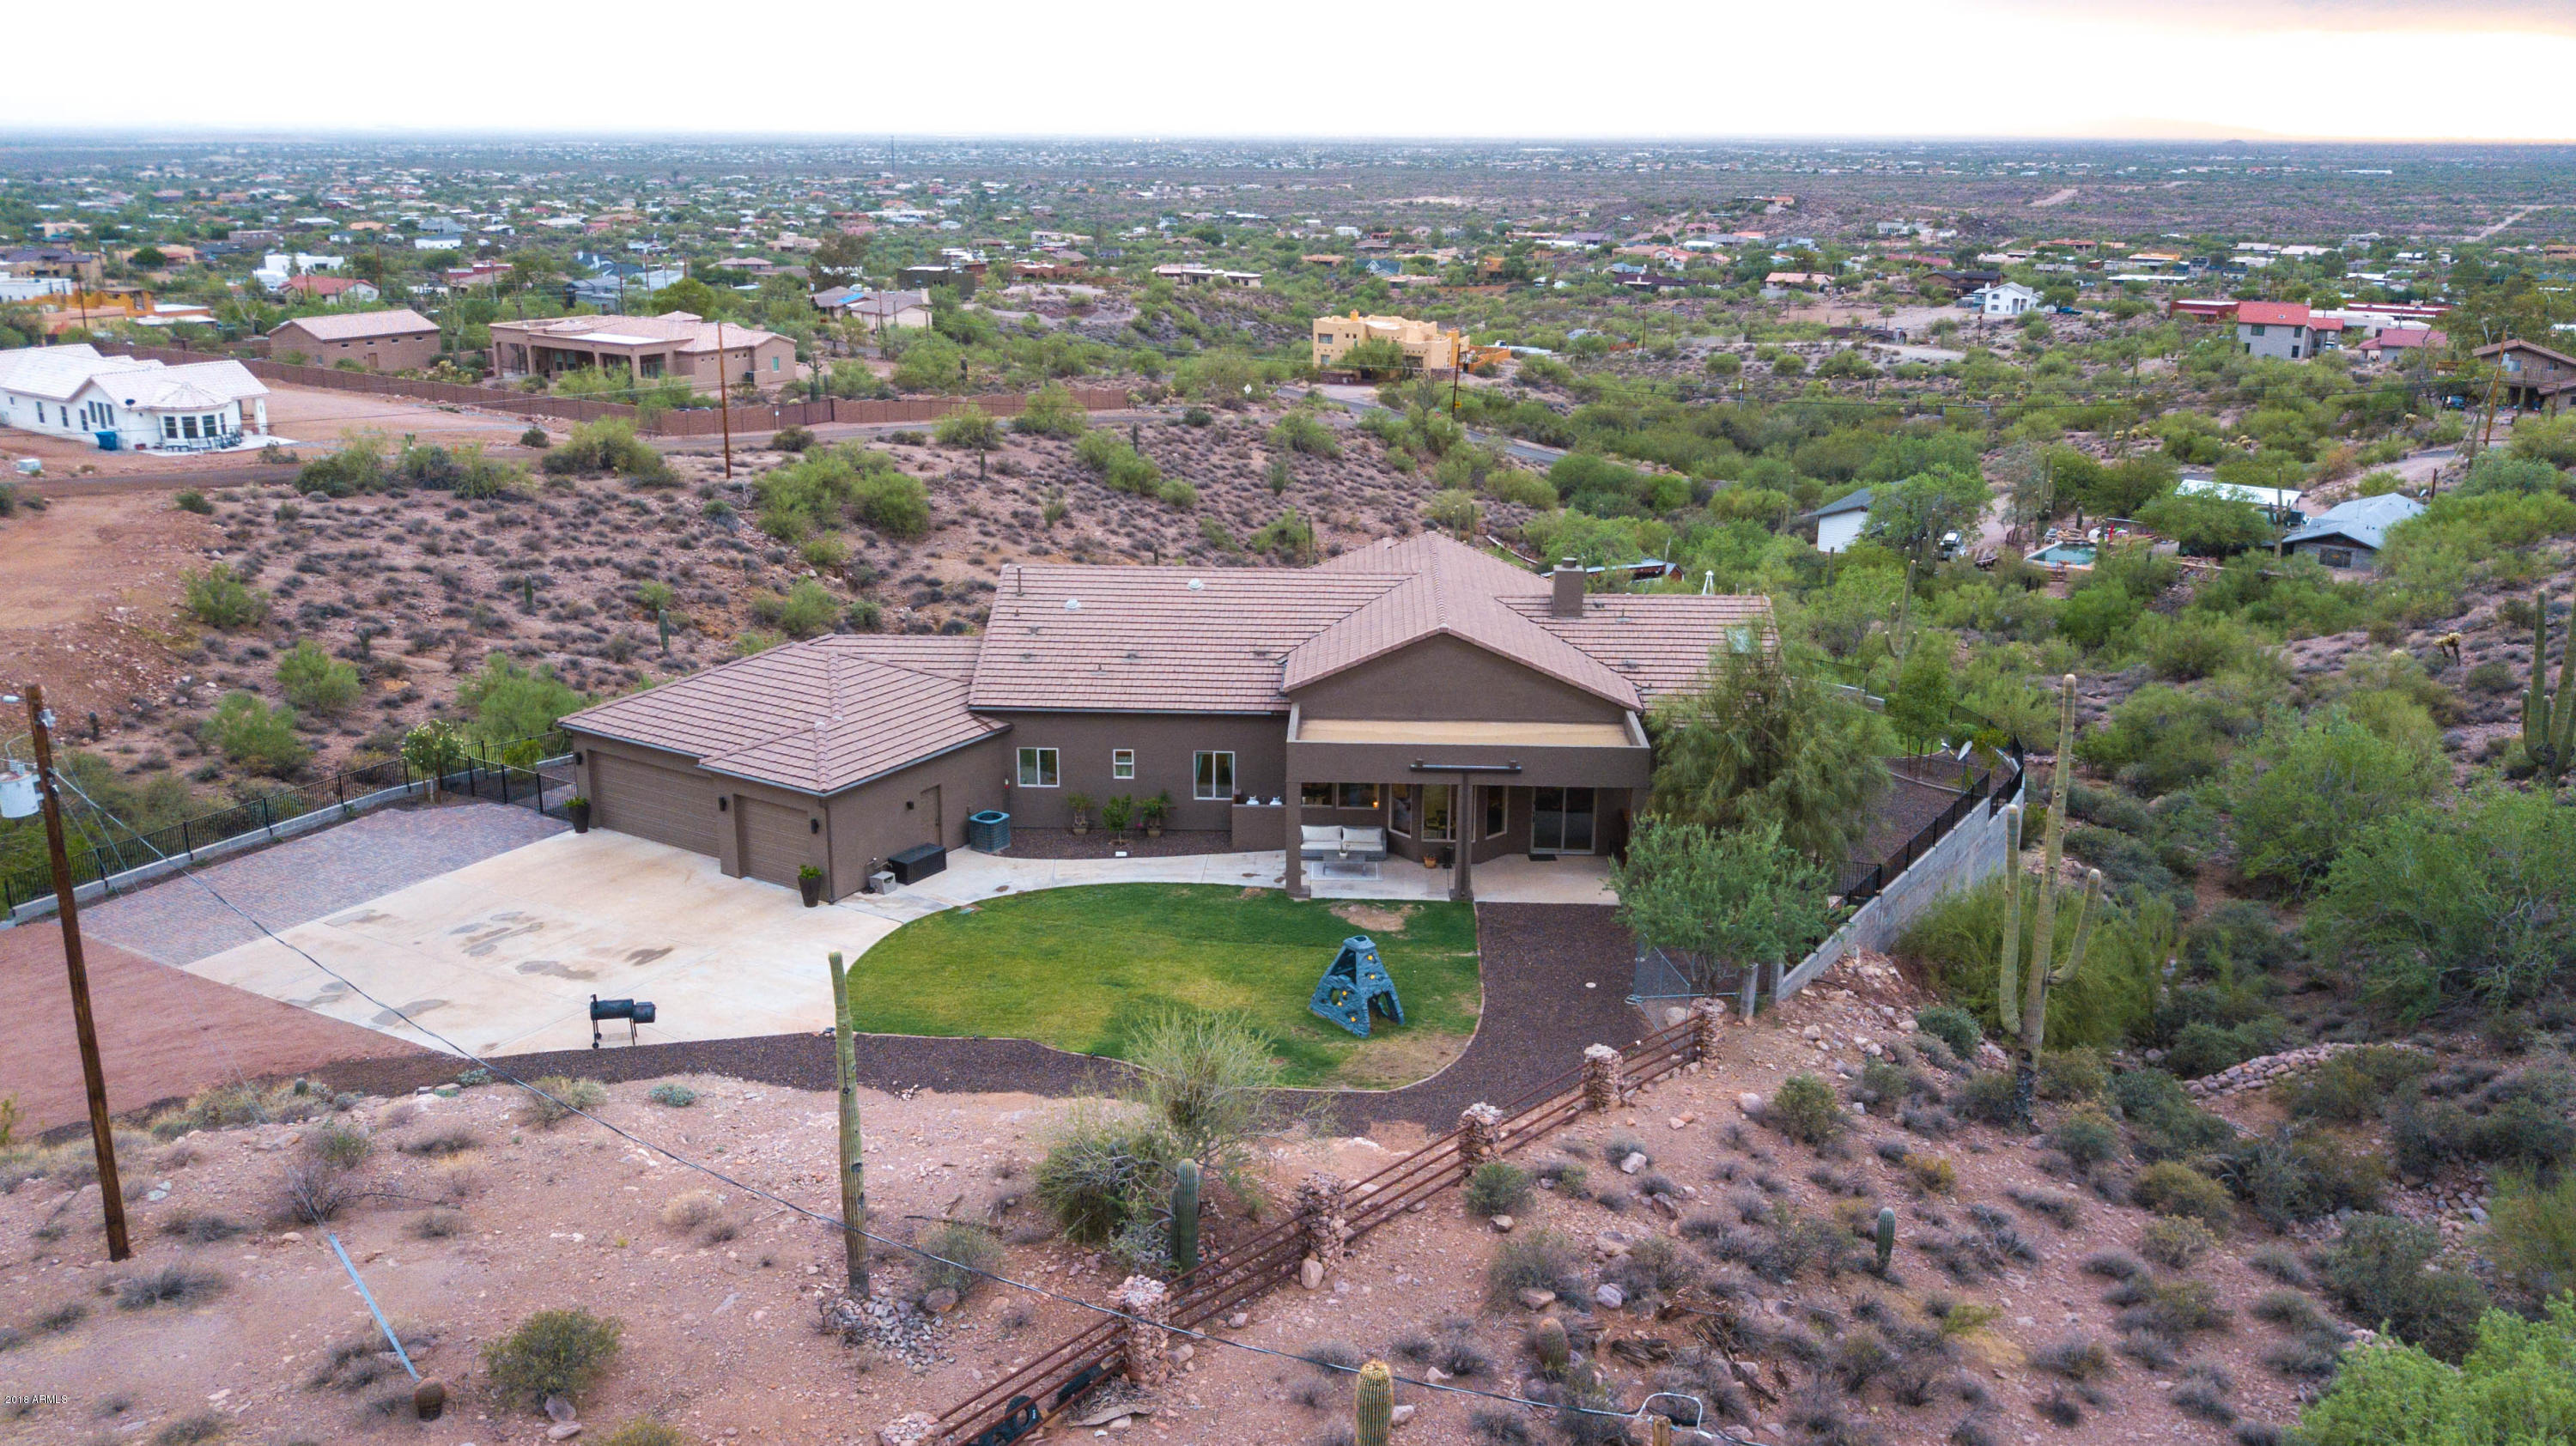 MLS 5811402 2880 N LA BARGE Road, Apache Junction, AZ 85119 Apache Junction AZ Luxury